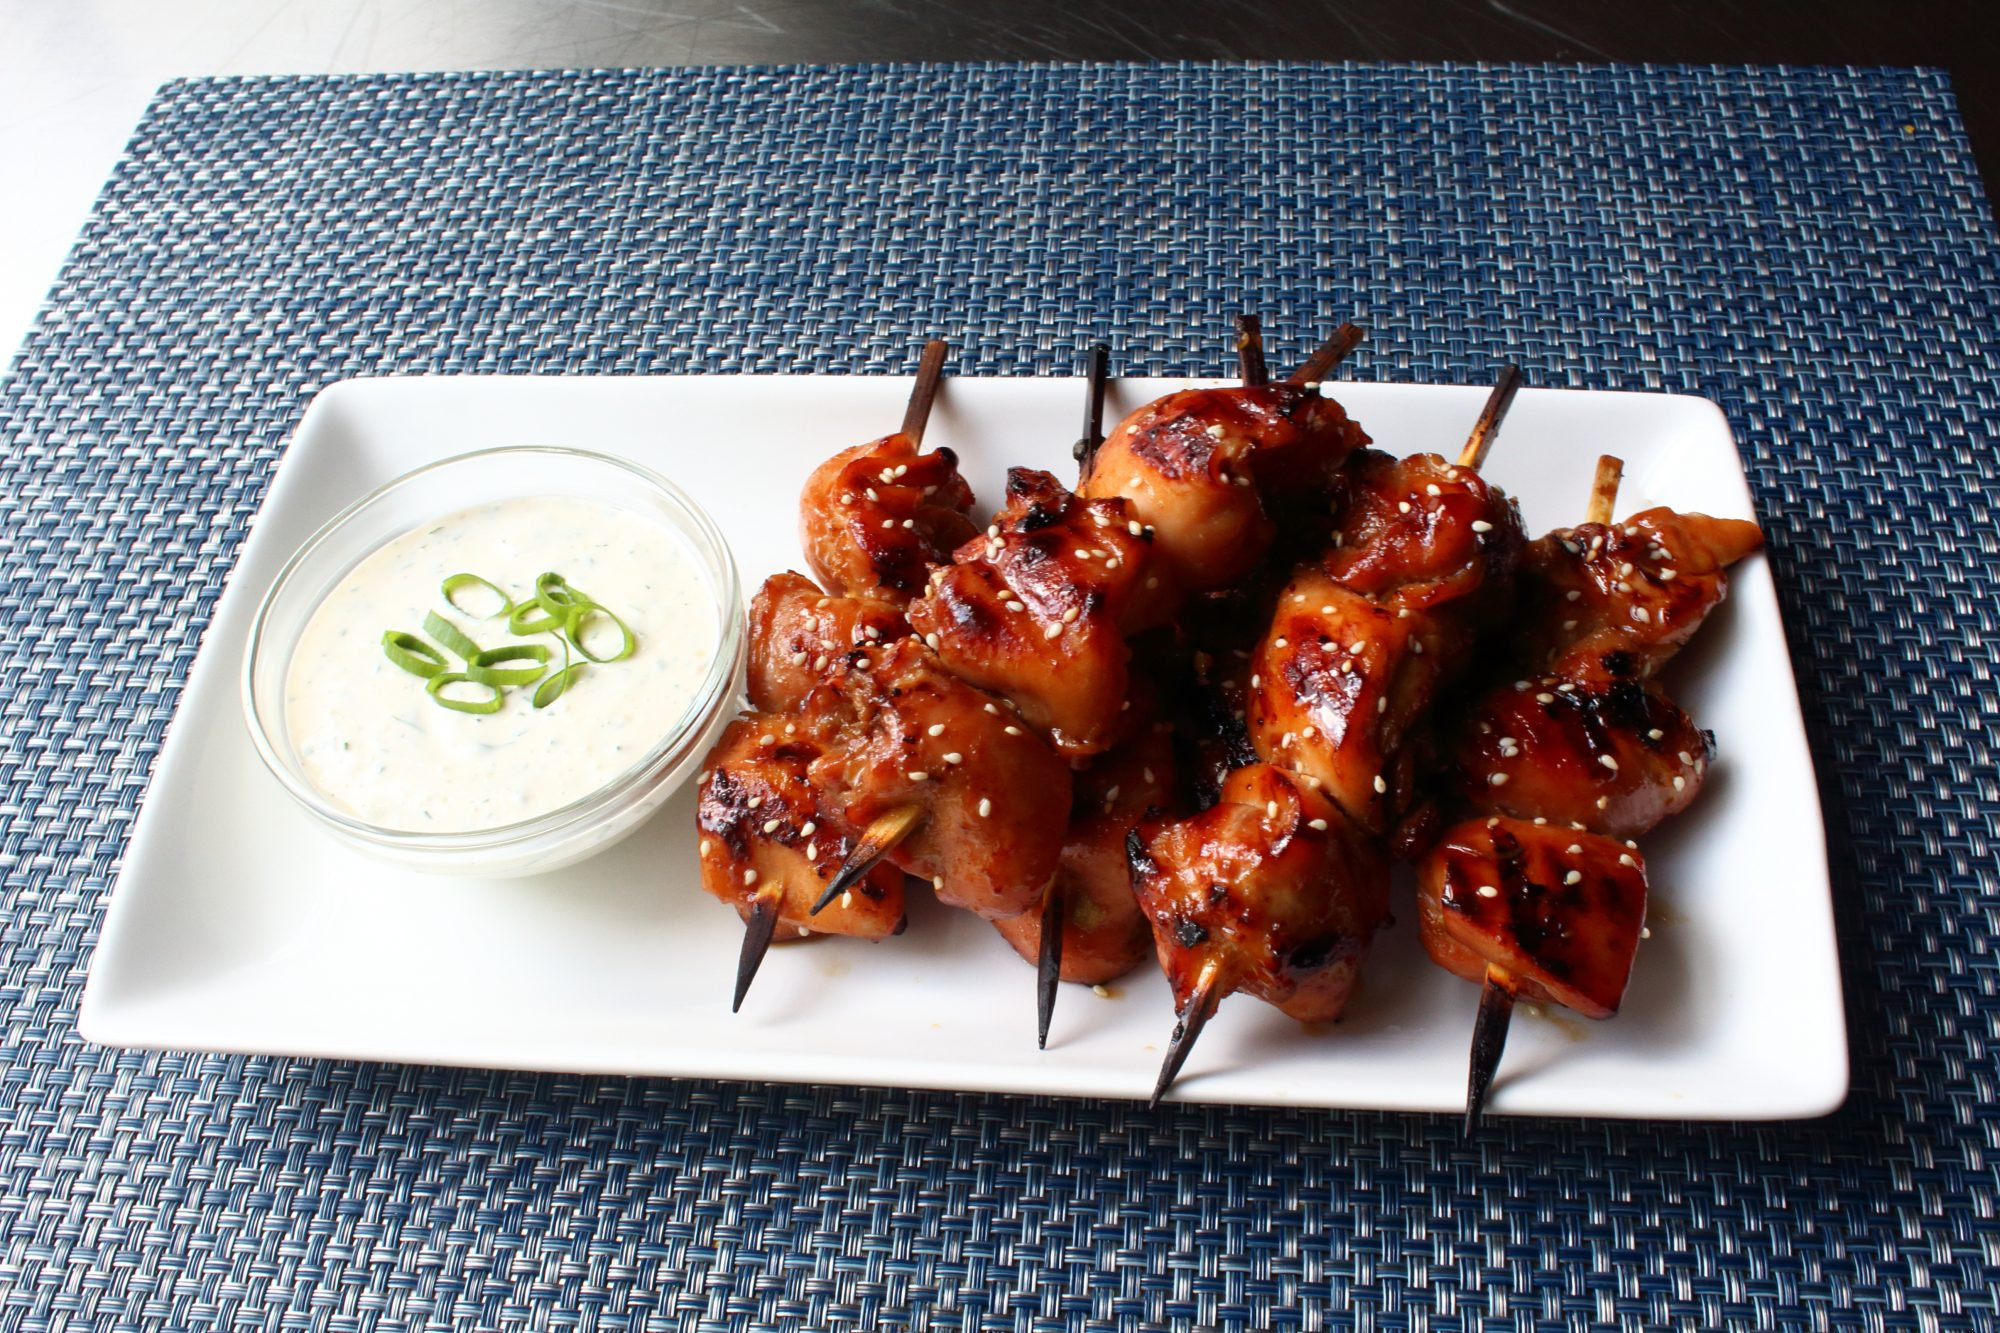 grilled chicken thighs on skewers with teriyaki sauce and white dipping sauce